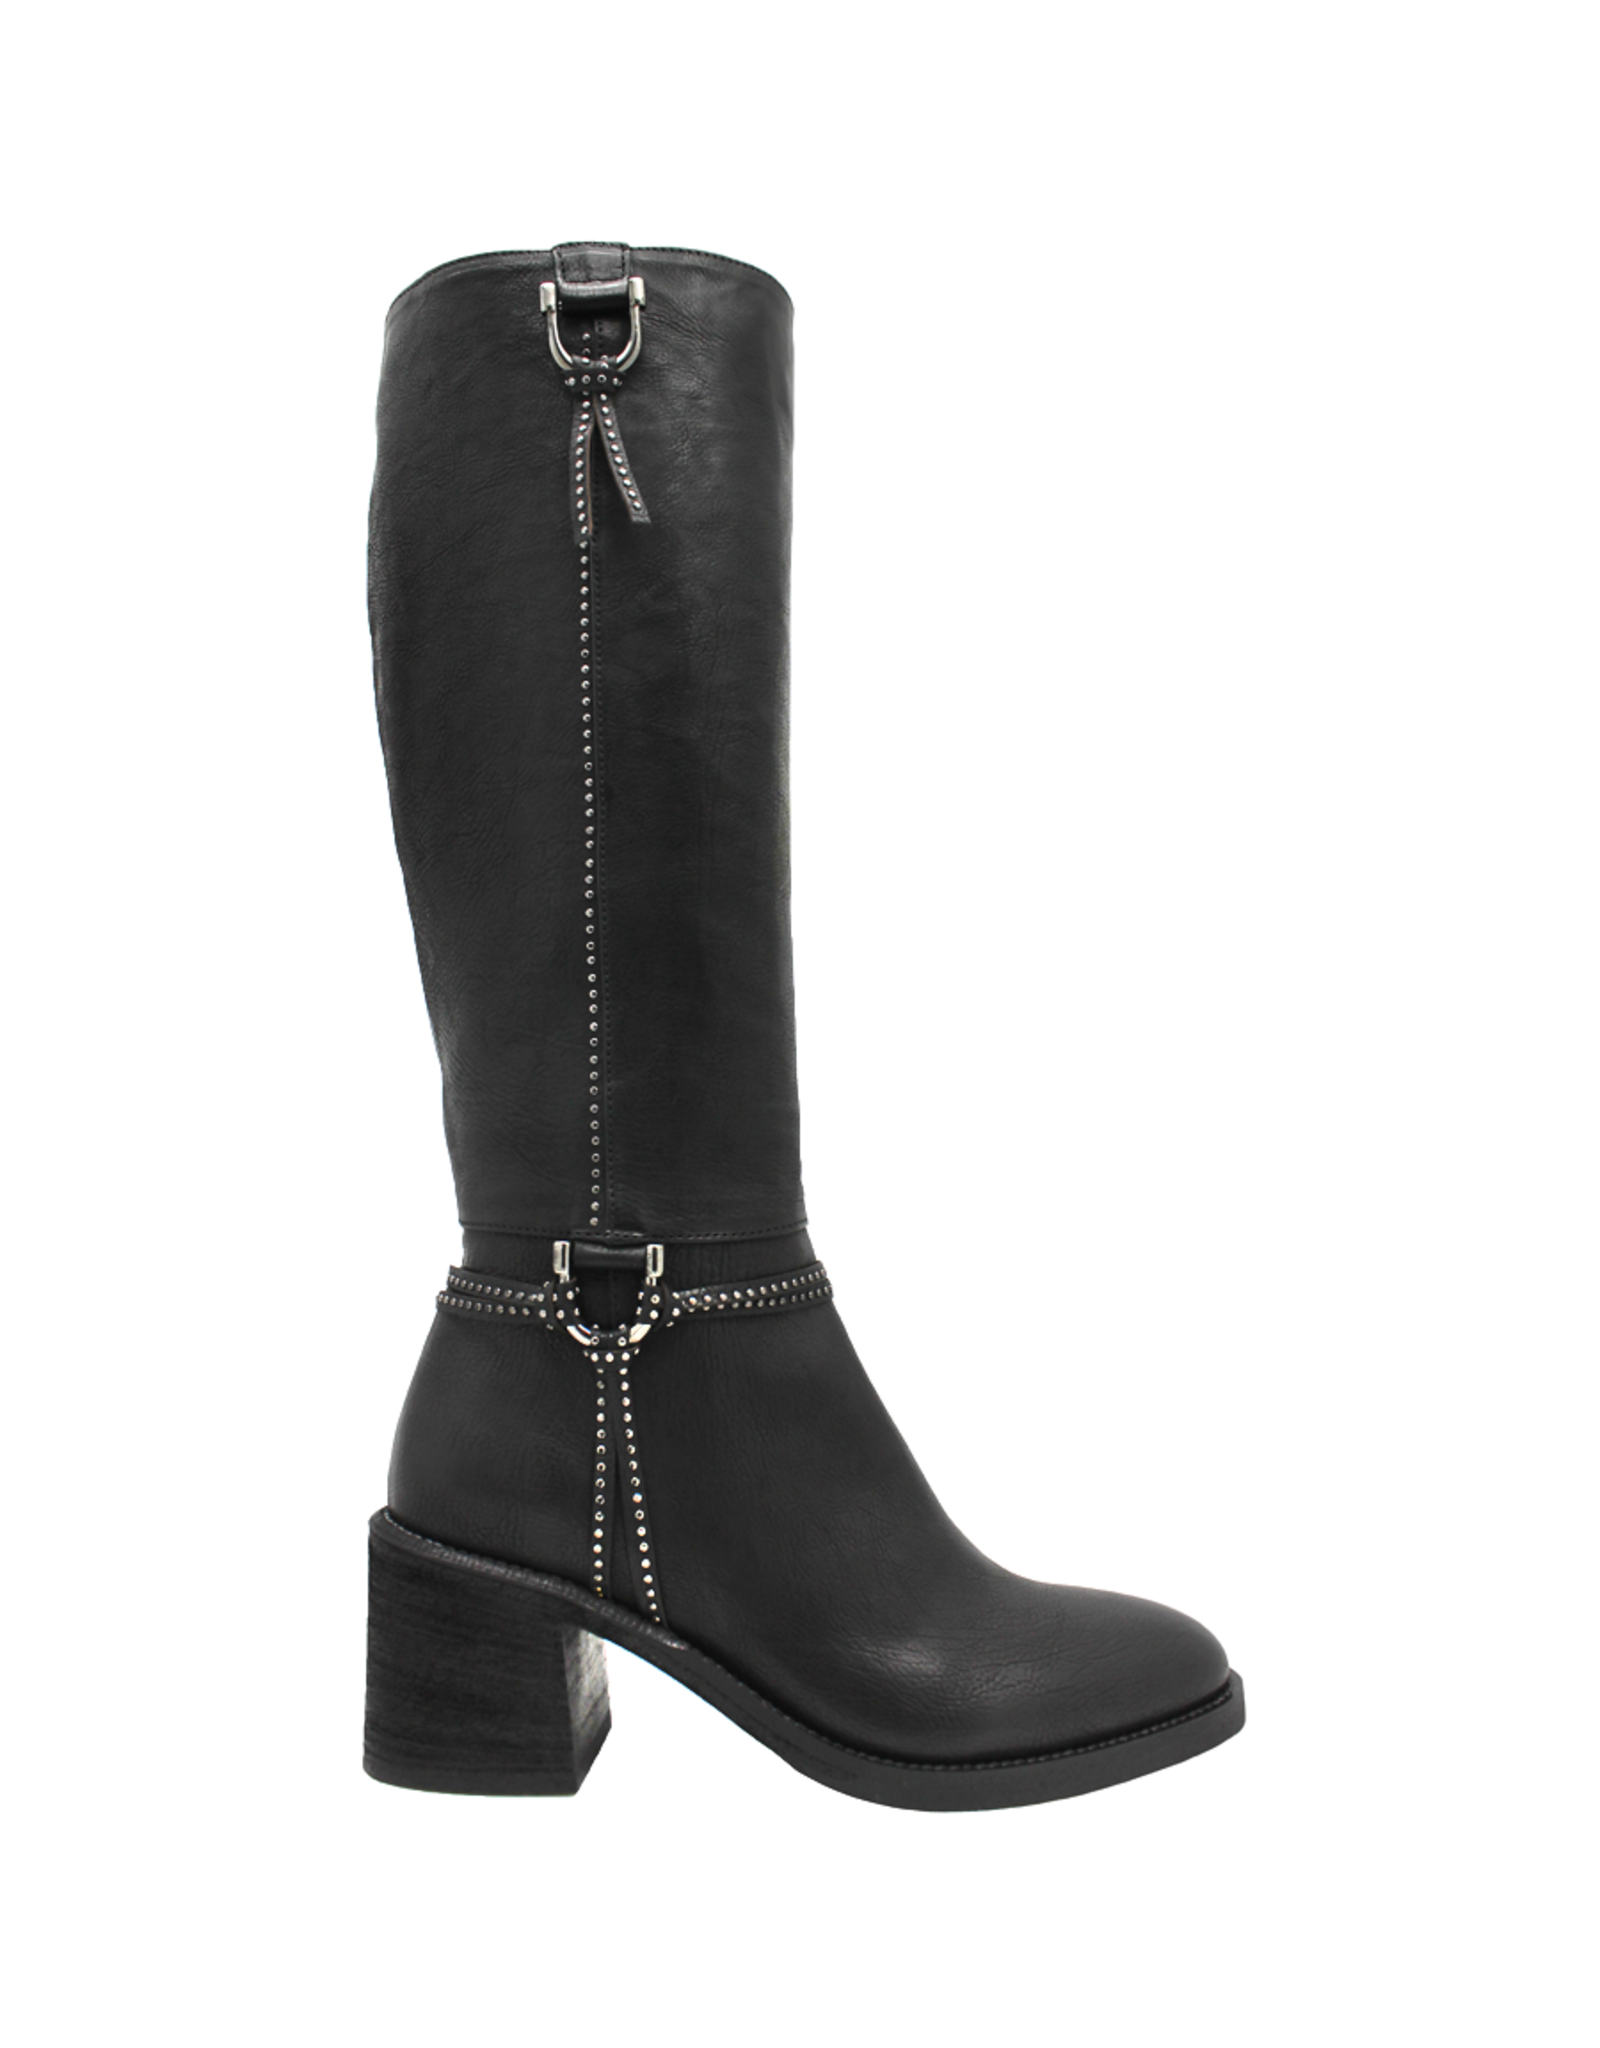 Now Now Black Knee Boot w/Harness 7157